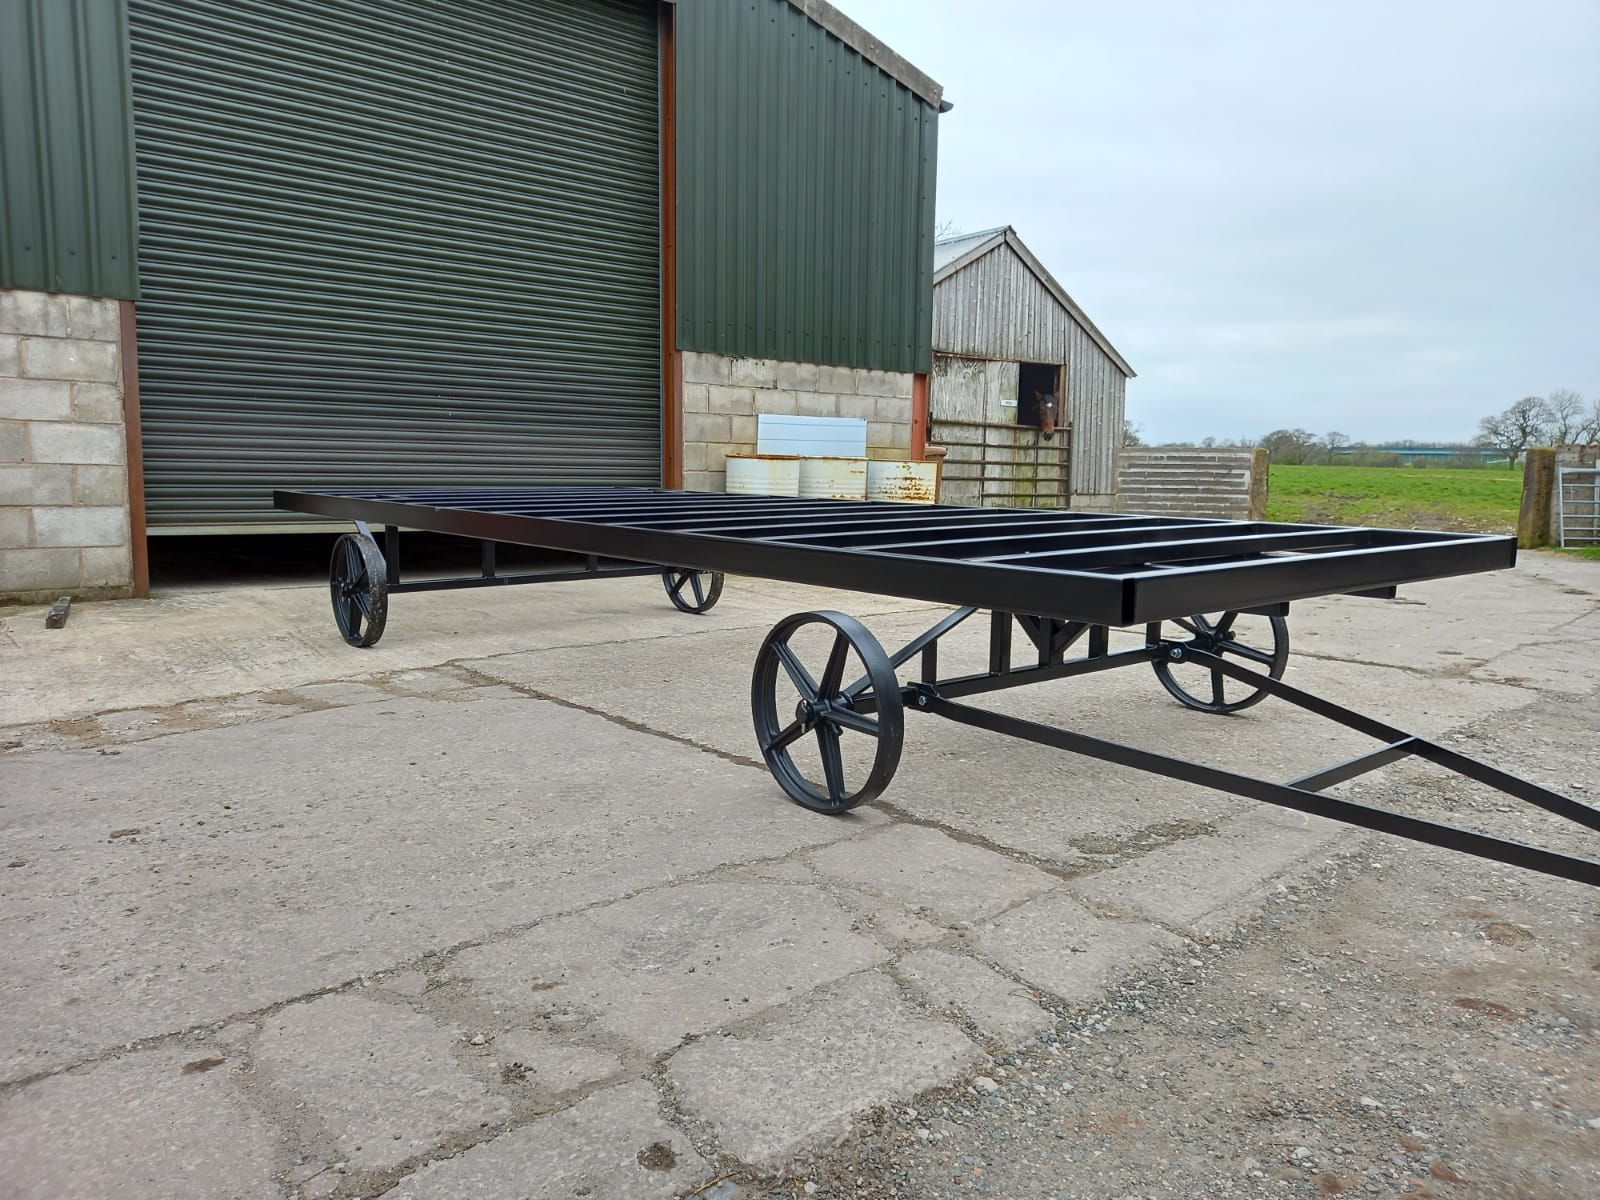 Steel Shepherds Hut Chassis: Manufacturers